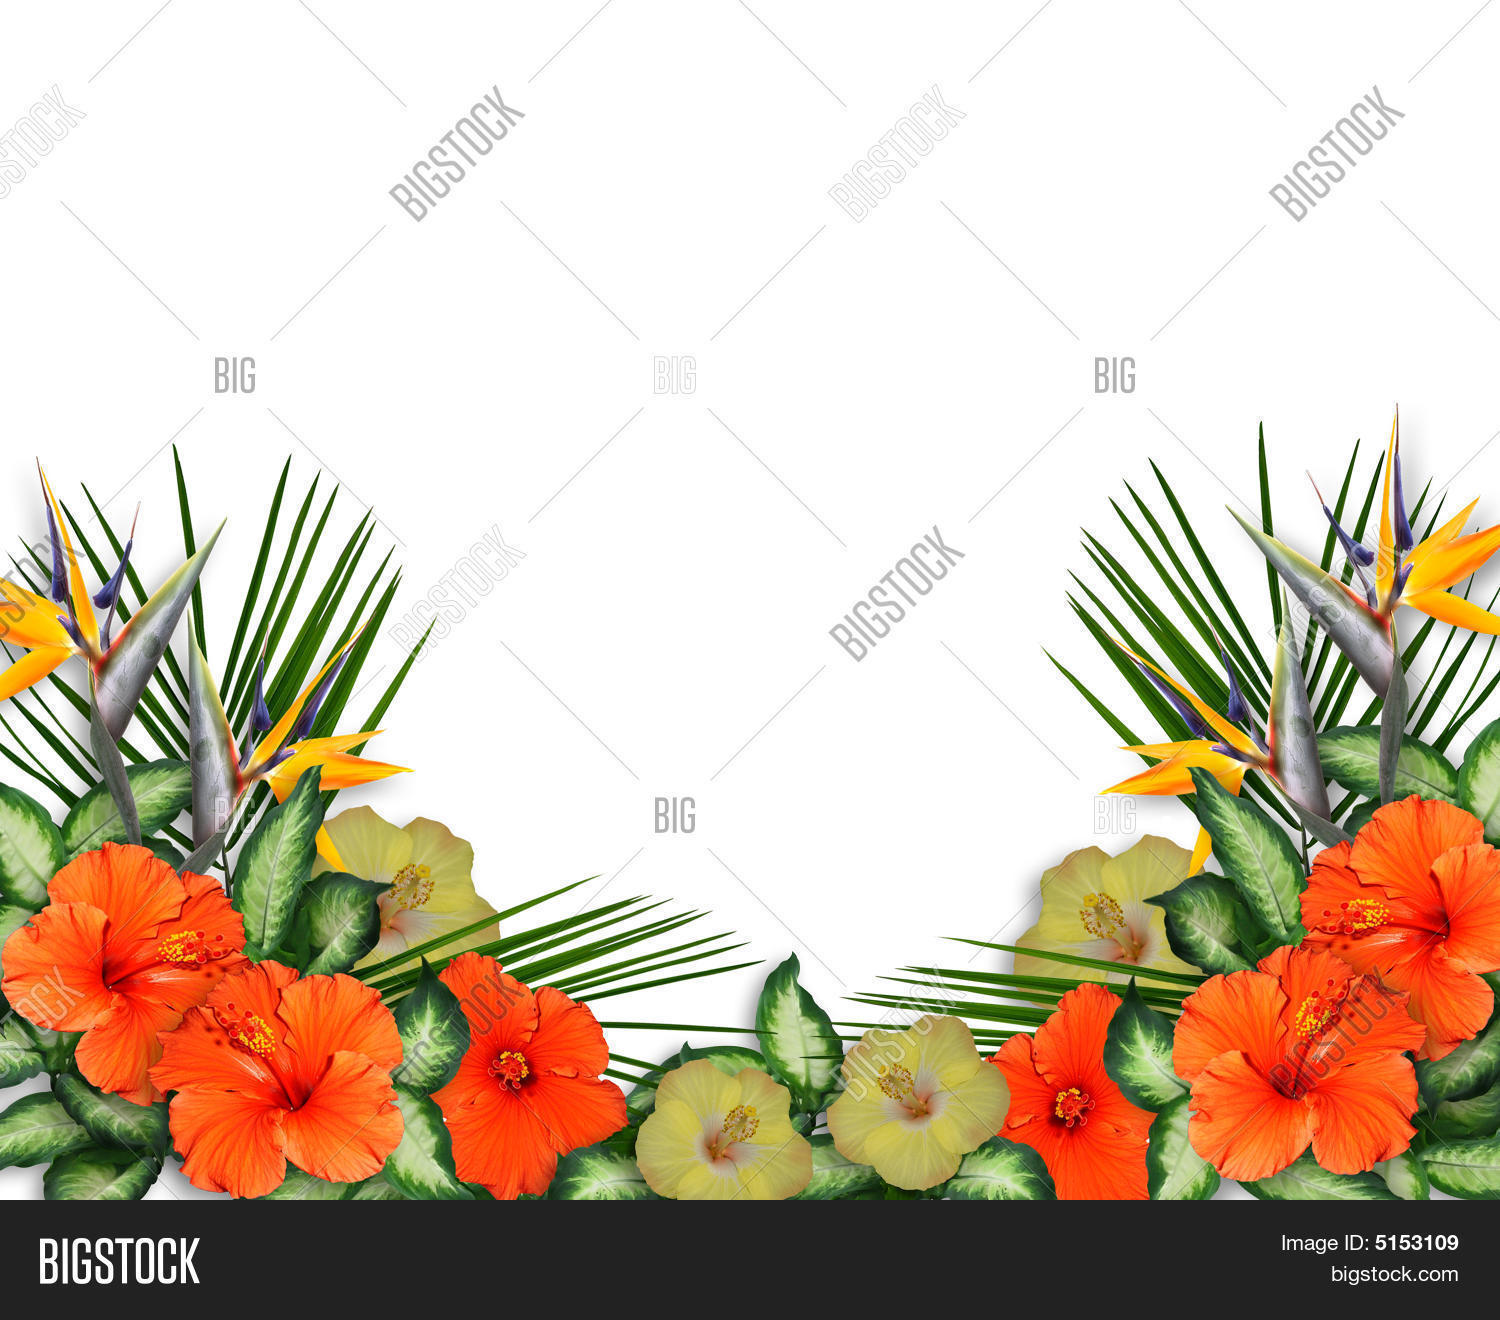 tropical flowers border image & photo | bigstock, Modern powerpoint